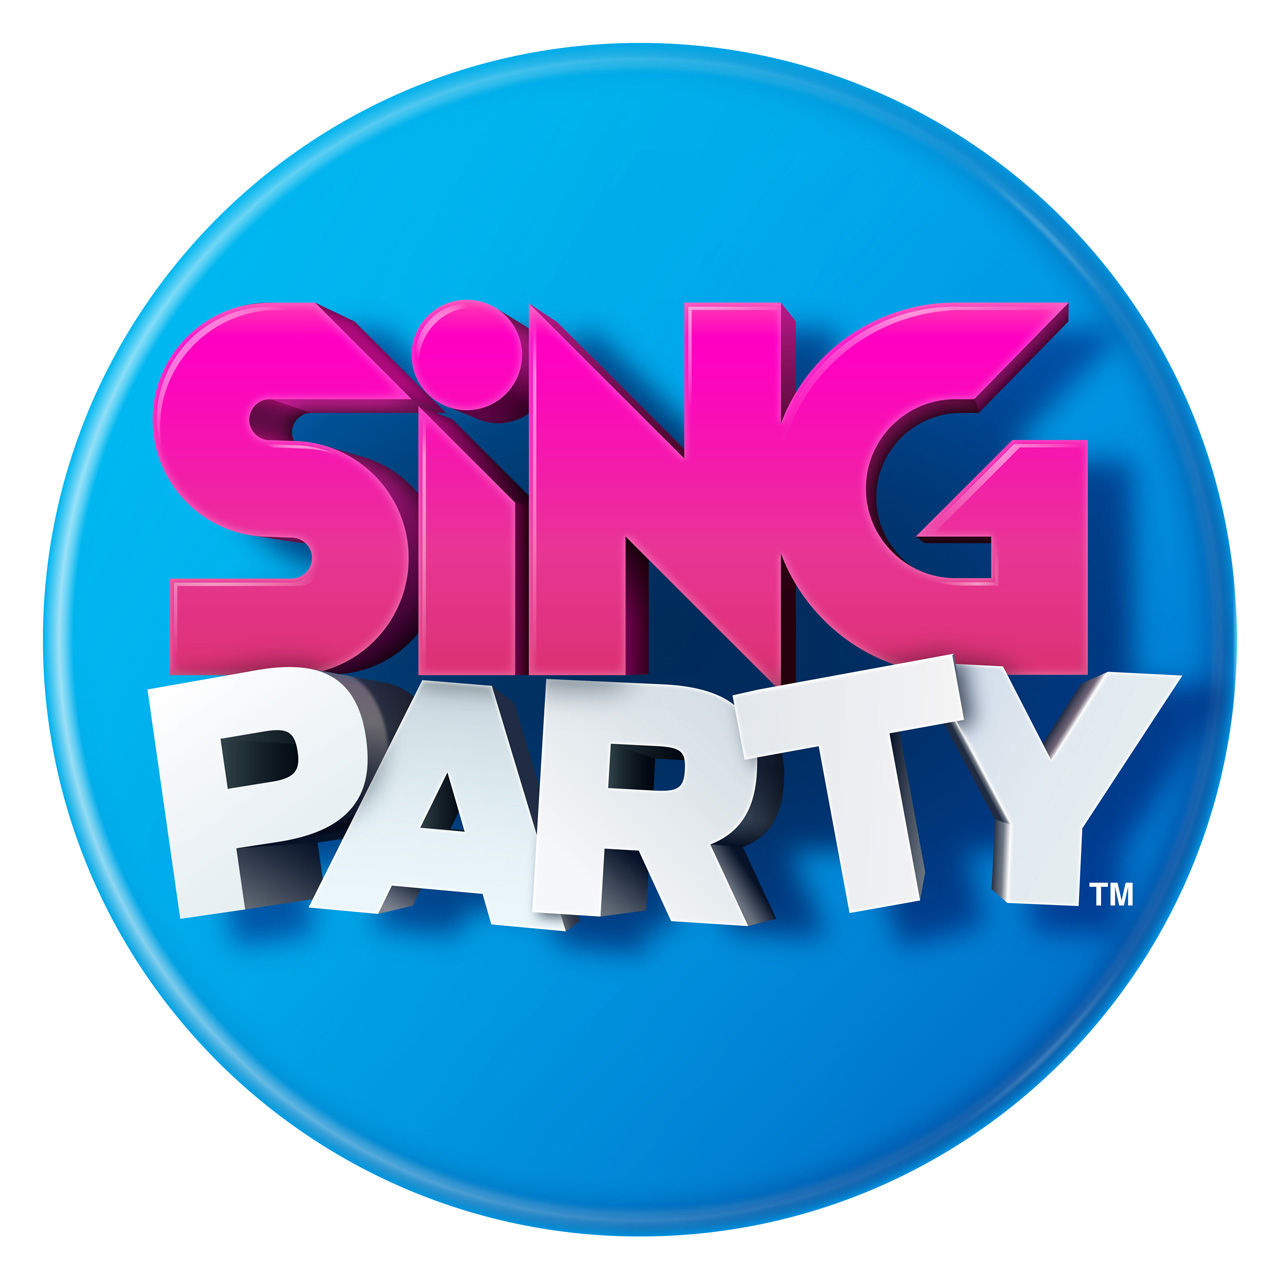 u00bb test sing party  wii u Expo Logo Only Logo Expo Marker